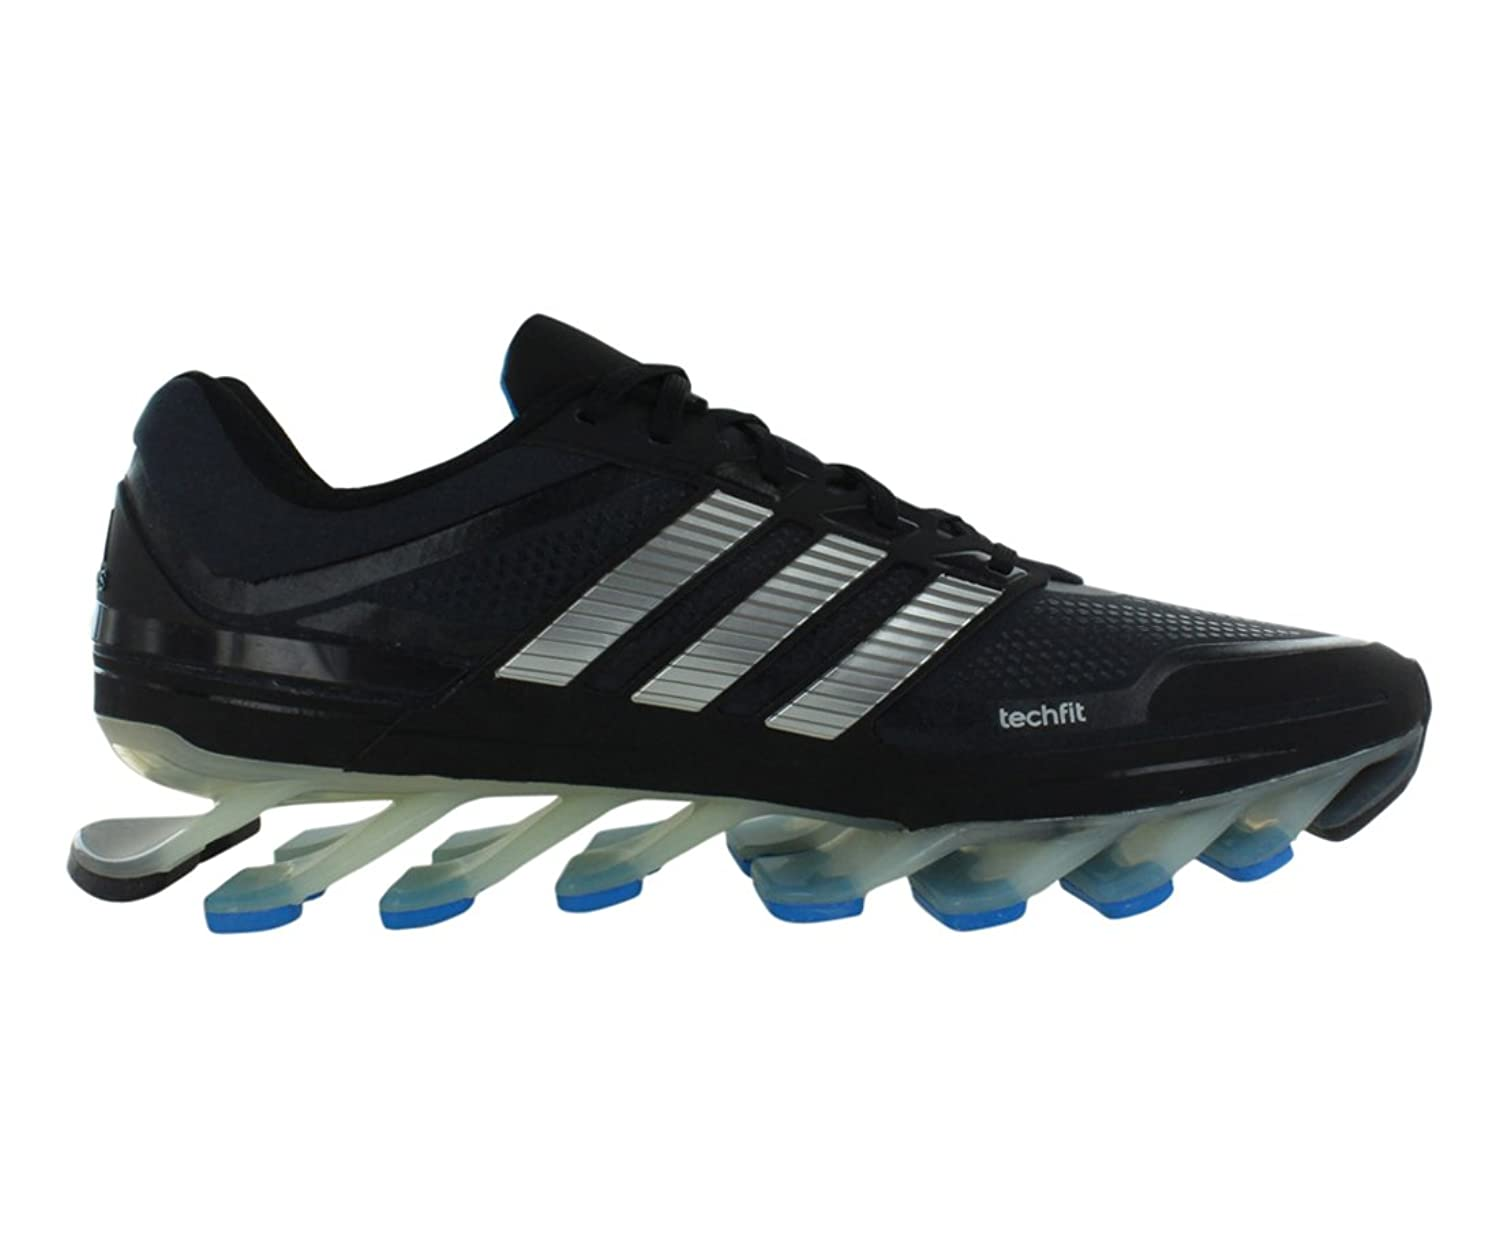 5ff395d24056 Buy cheap Online - adidas springblade 5 kids silver,Fine - Shoes ...